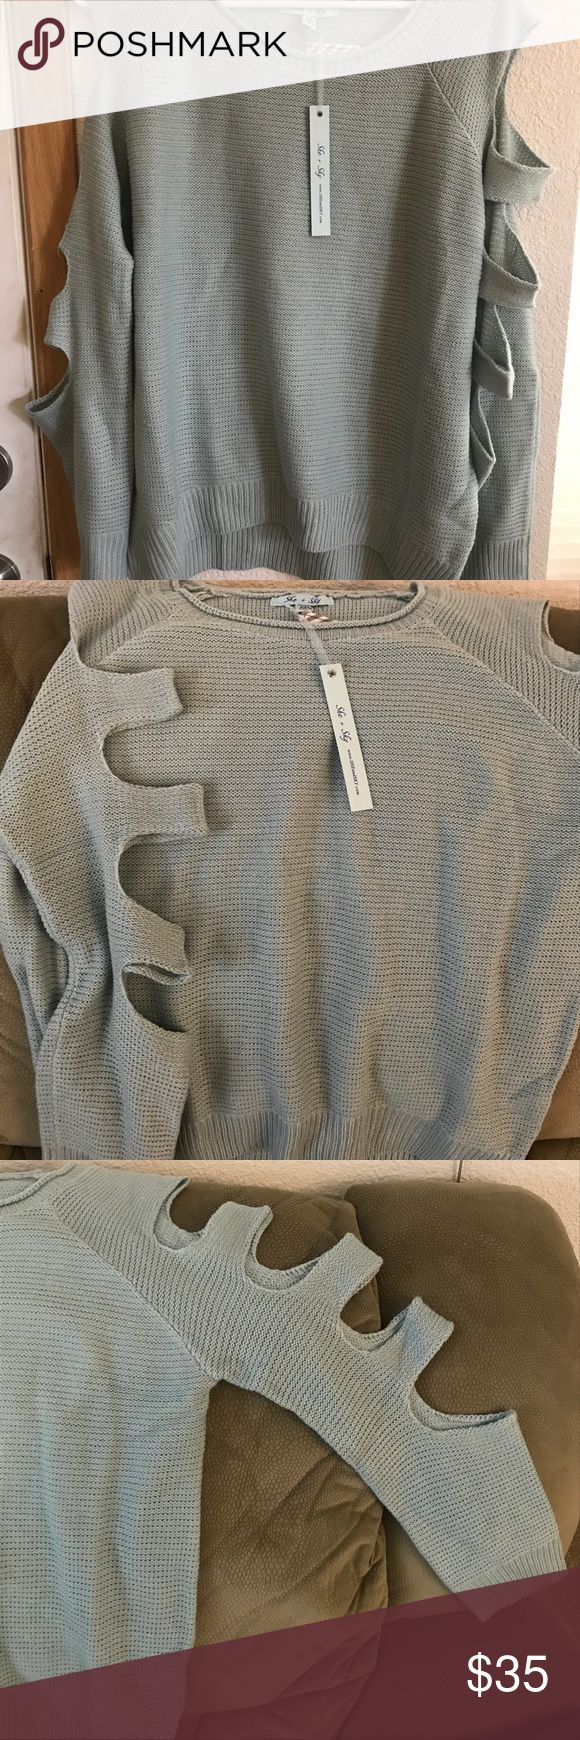 Knit sweater with cut out sleeves NWT Aqua green sweater with cut or sleeve. Super comfy and BRAND NEW! Brand is She + Sky, but was purchased from Sea Salt and Honey Boutique. I offer bundle discounts! She and Sky Sweaters